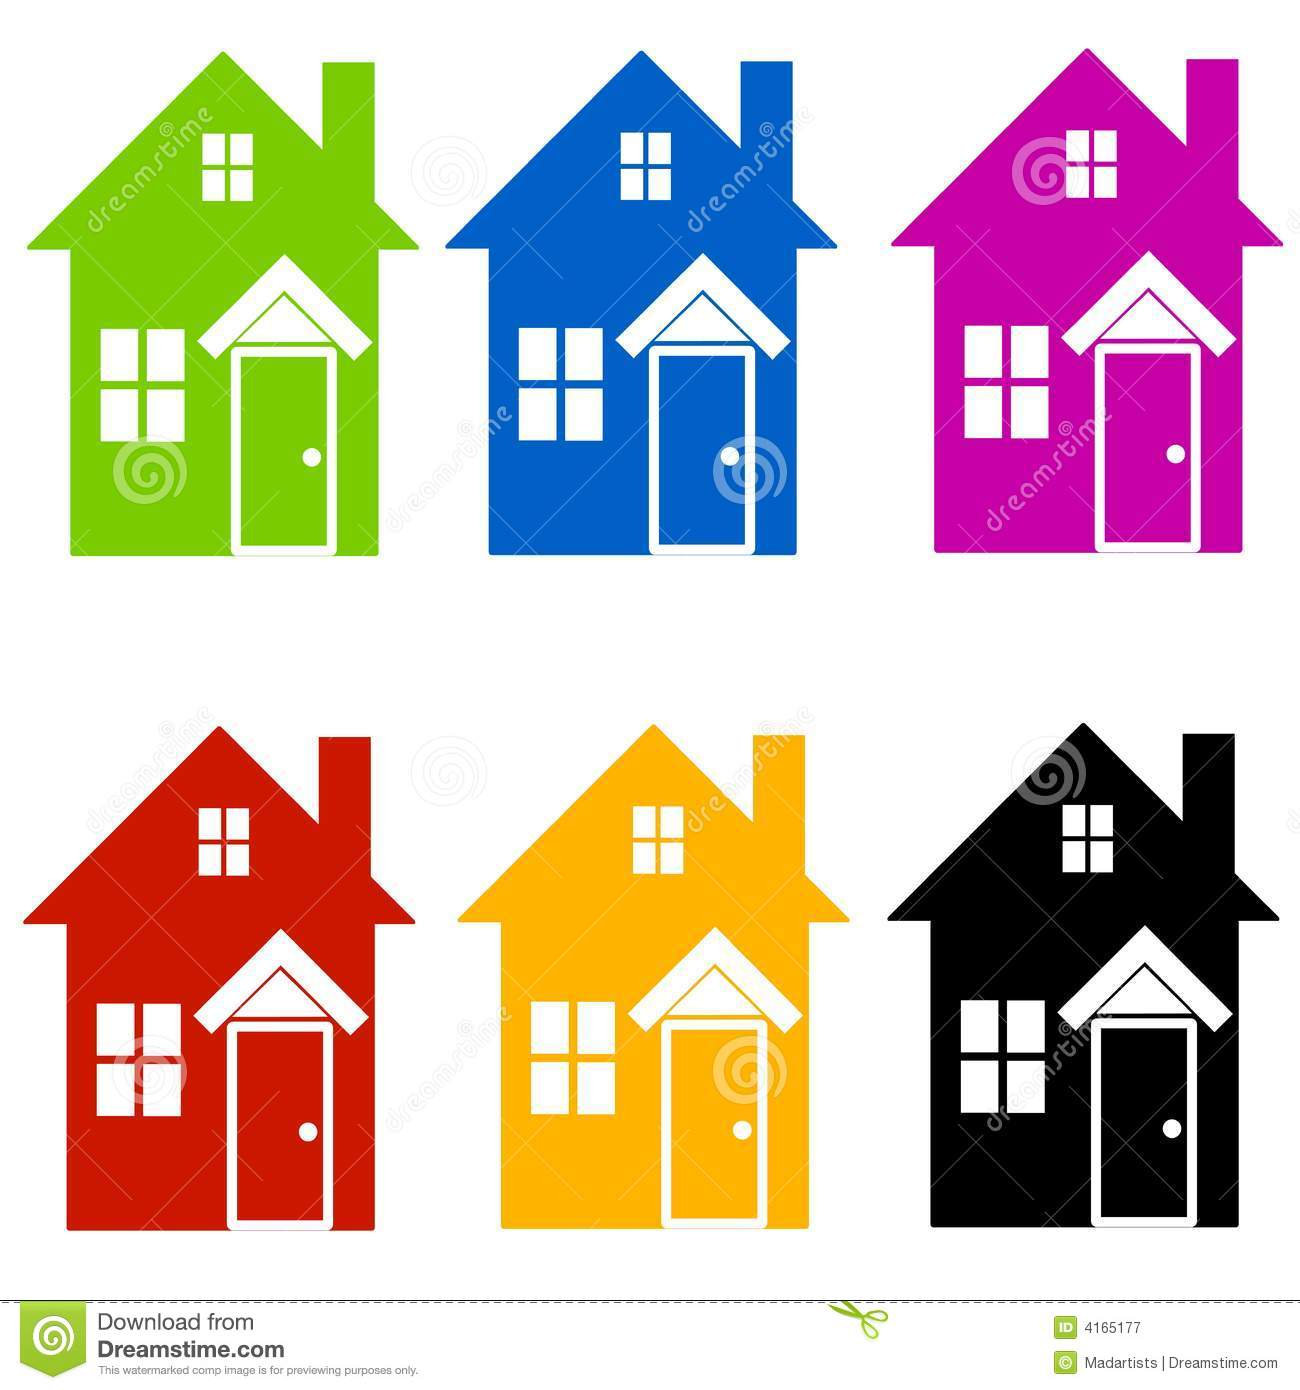 Free House Clipart Free Download Clip Art.